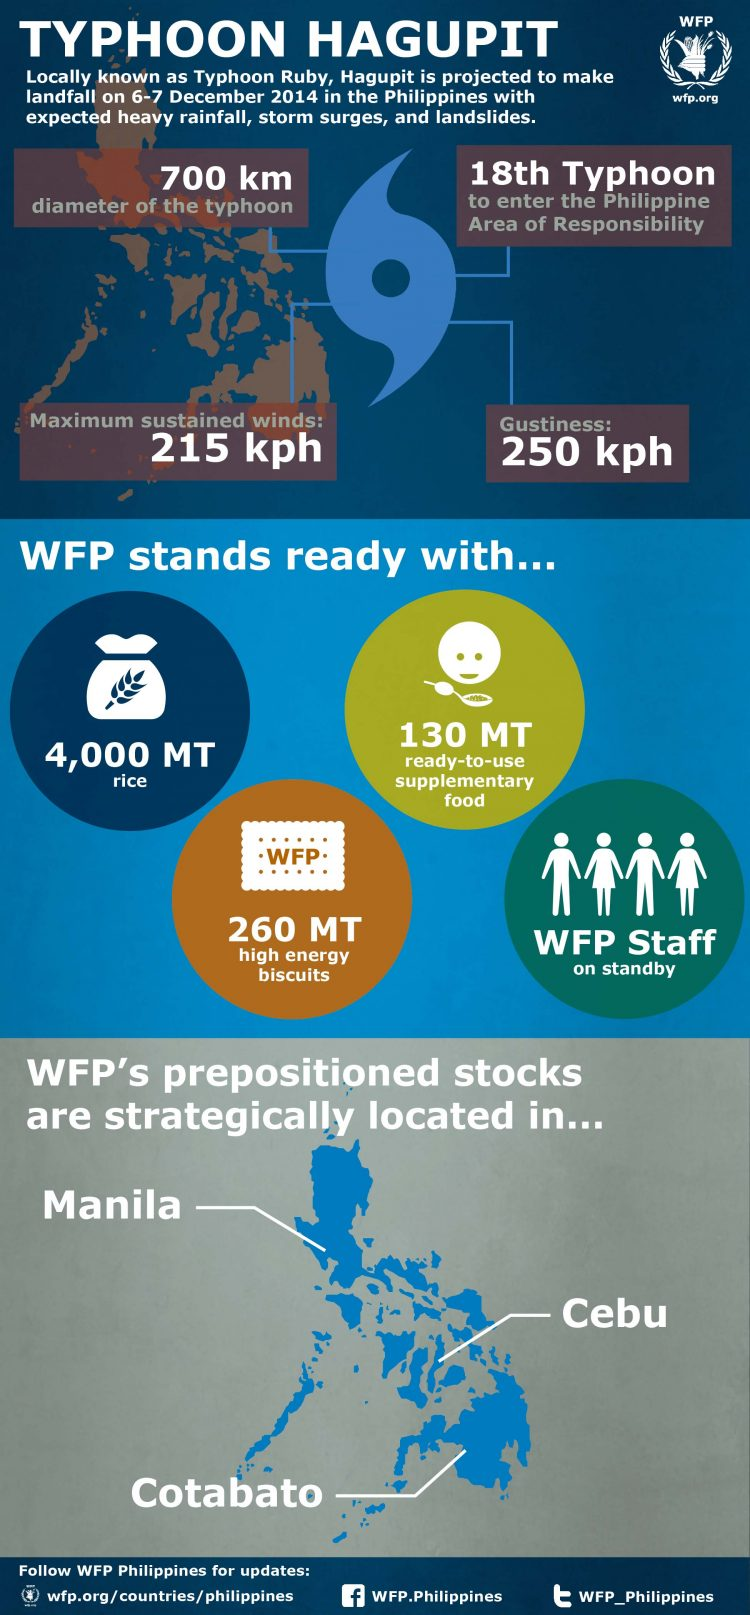 World Food Program Infographic: Typhoon Hagupit in the Philippines